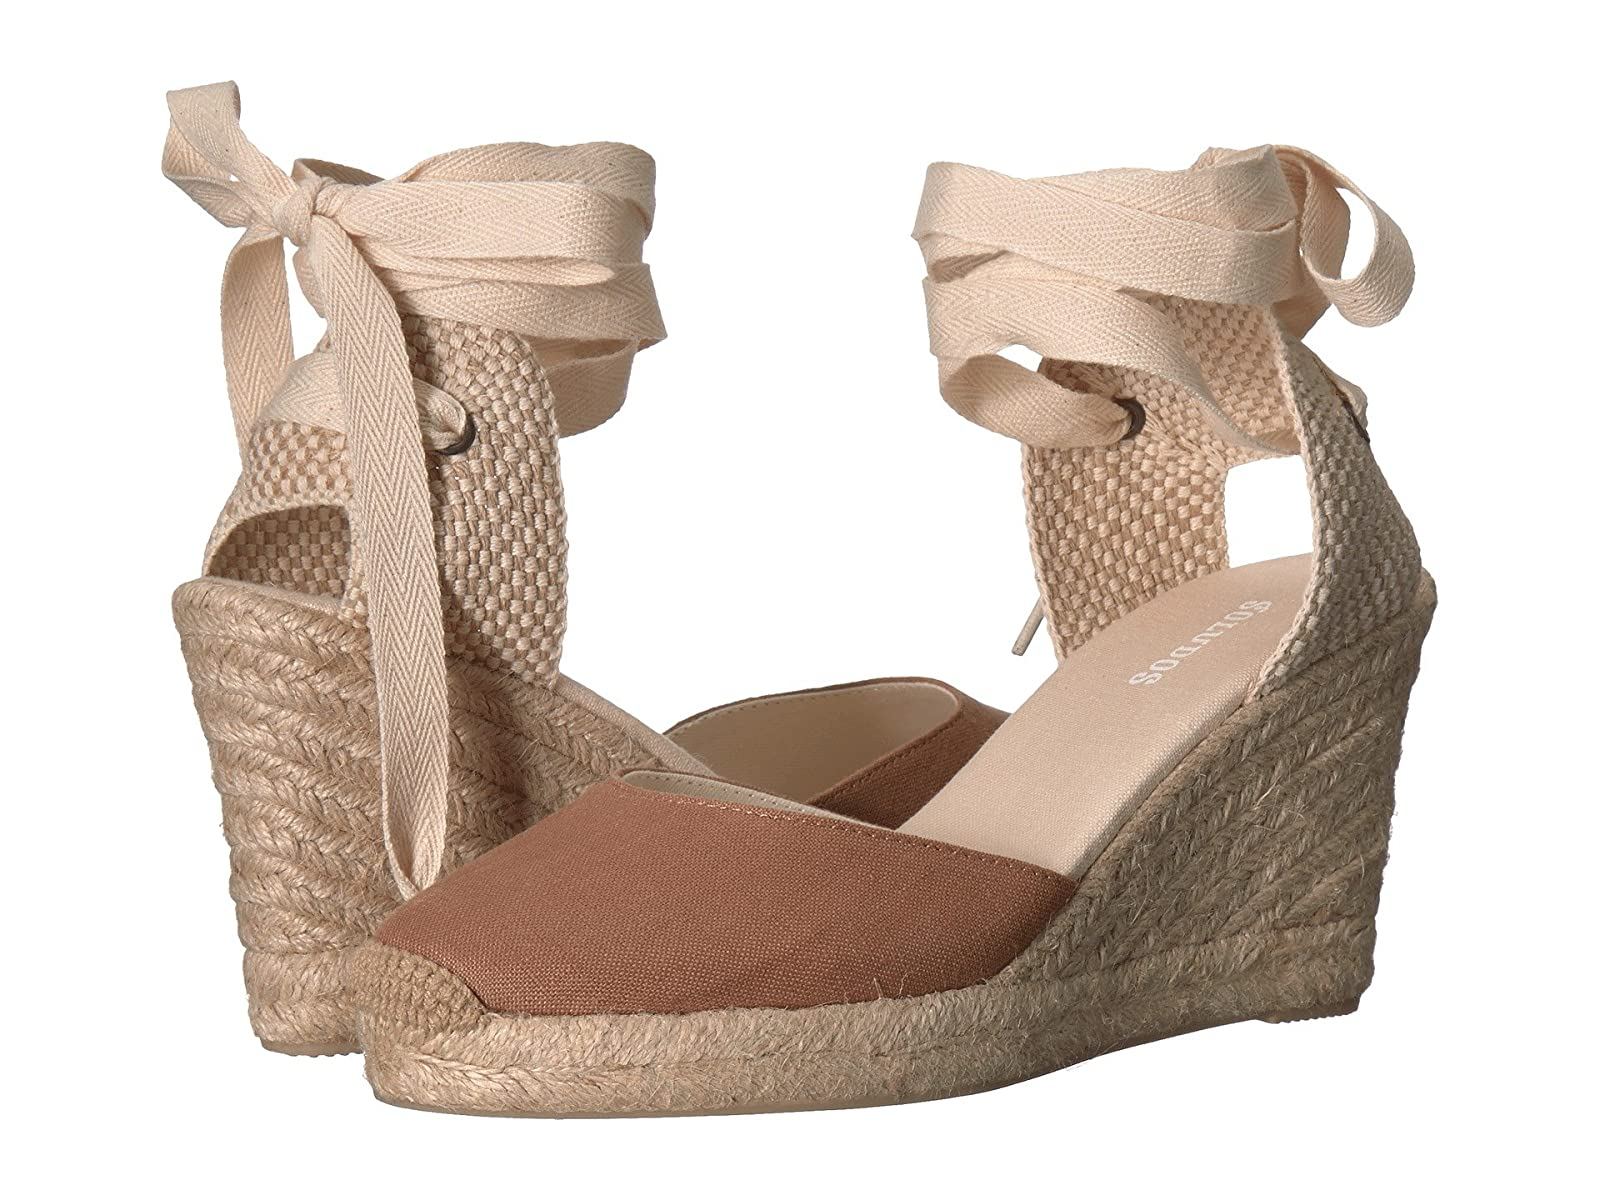 Soludos Tall Wedge 90mmAtmospheric grades have affordable shoes